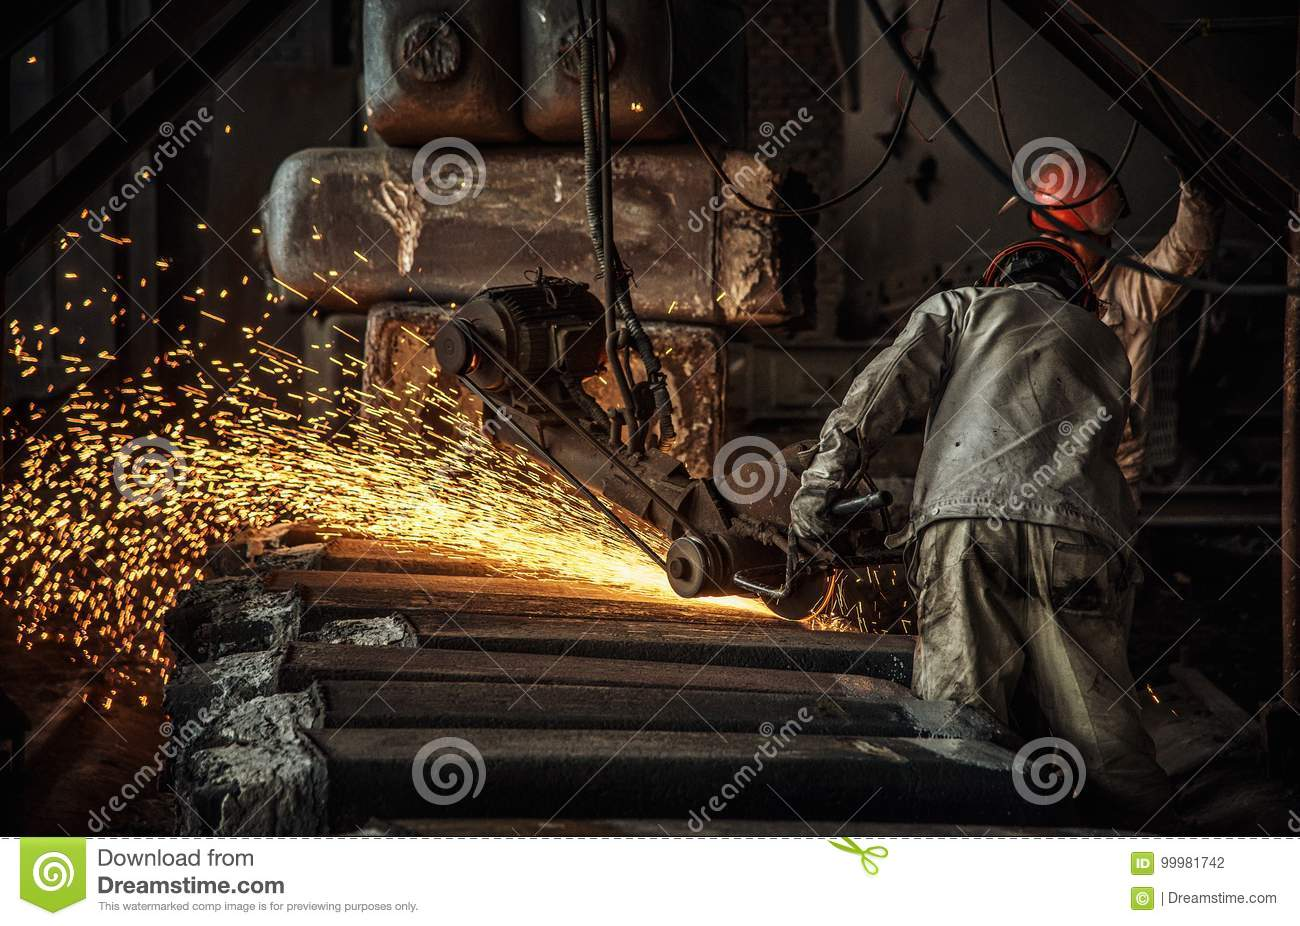 The workers in the steel mill are burnishing the steel